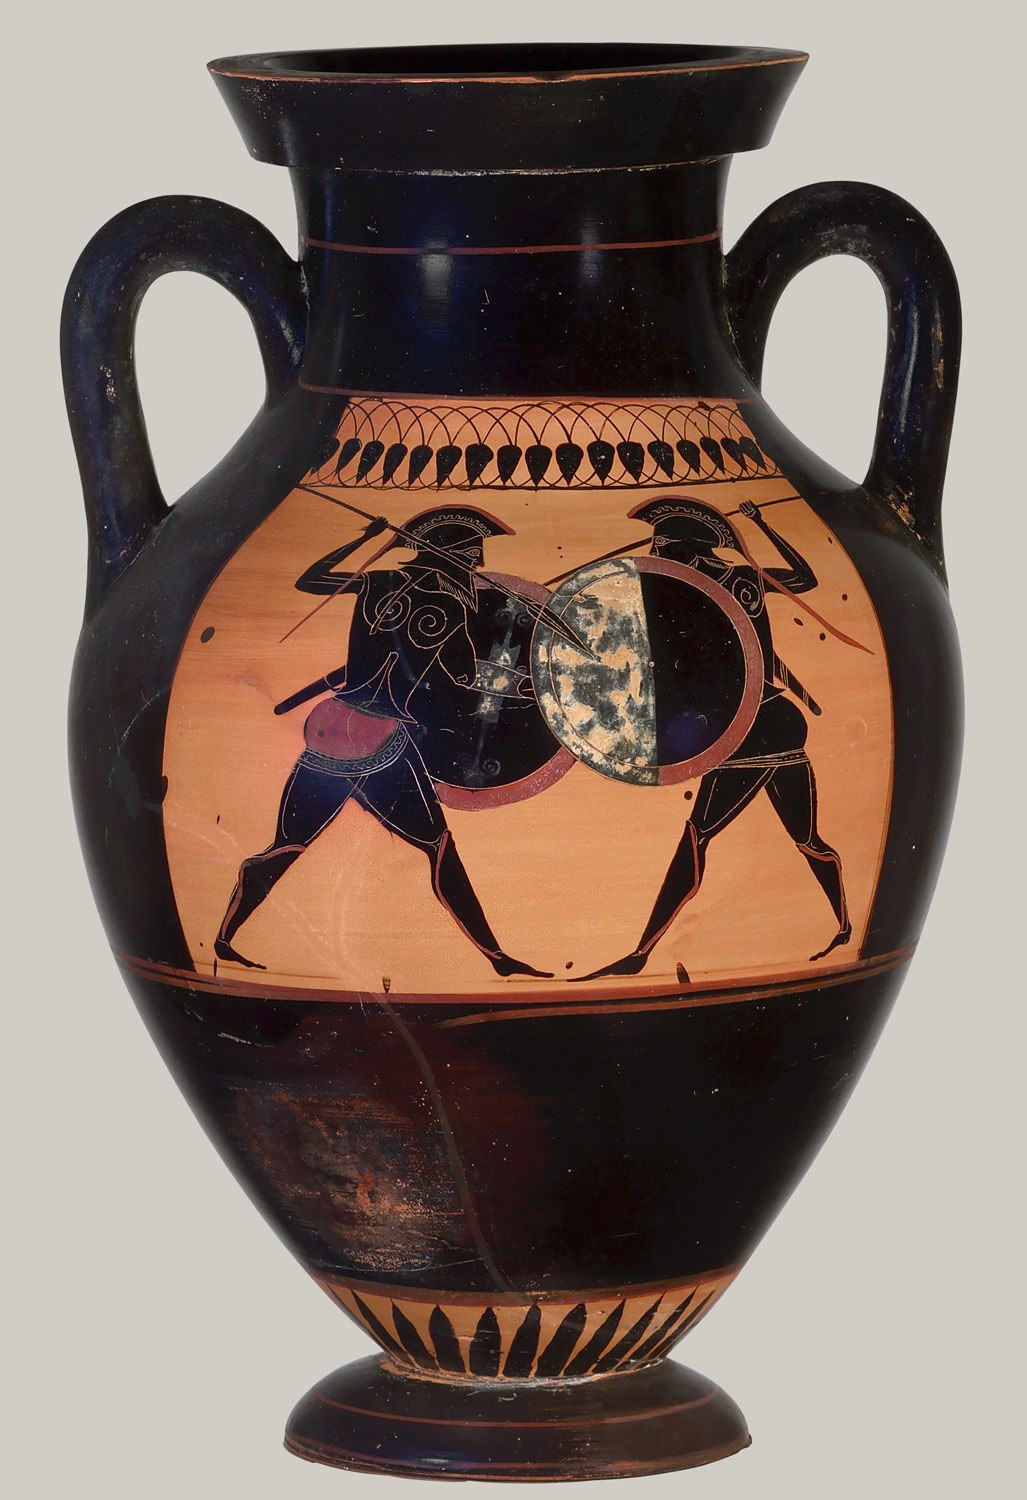 greek vase designs of ancient greek vases class 3sv 2016 for image result for ancient greece vases everyday design